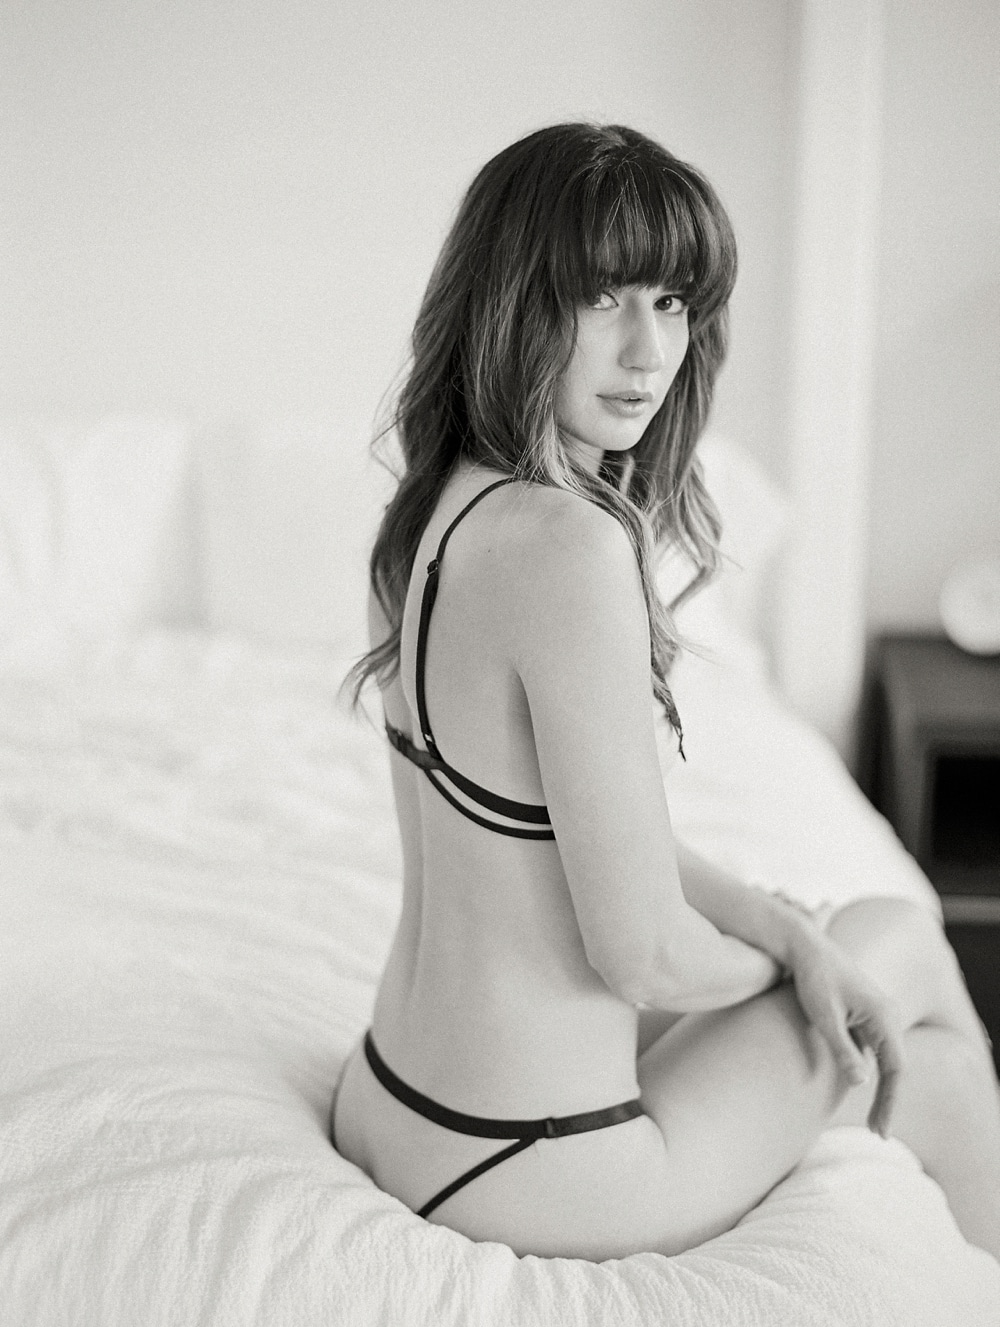 Kristin-La-Voie-Photography-Austin-Boudoir-Fine-Are-Photographer-Dallas-Chicago-45